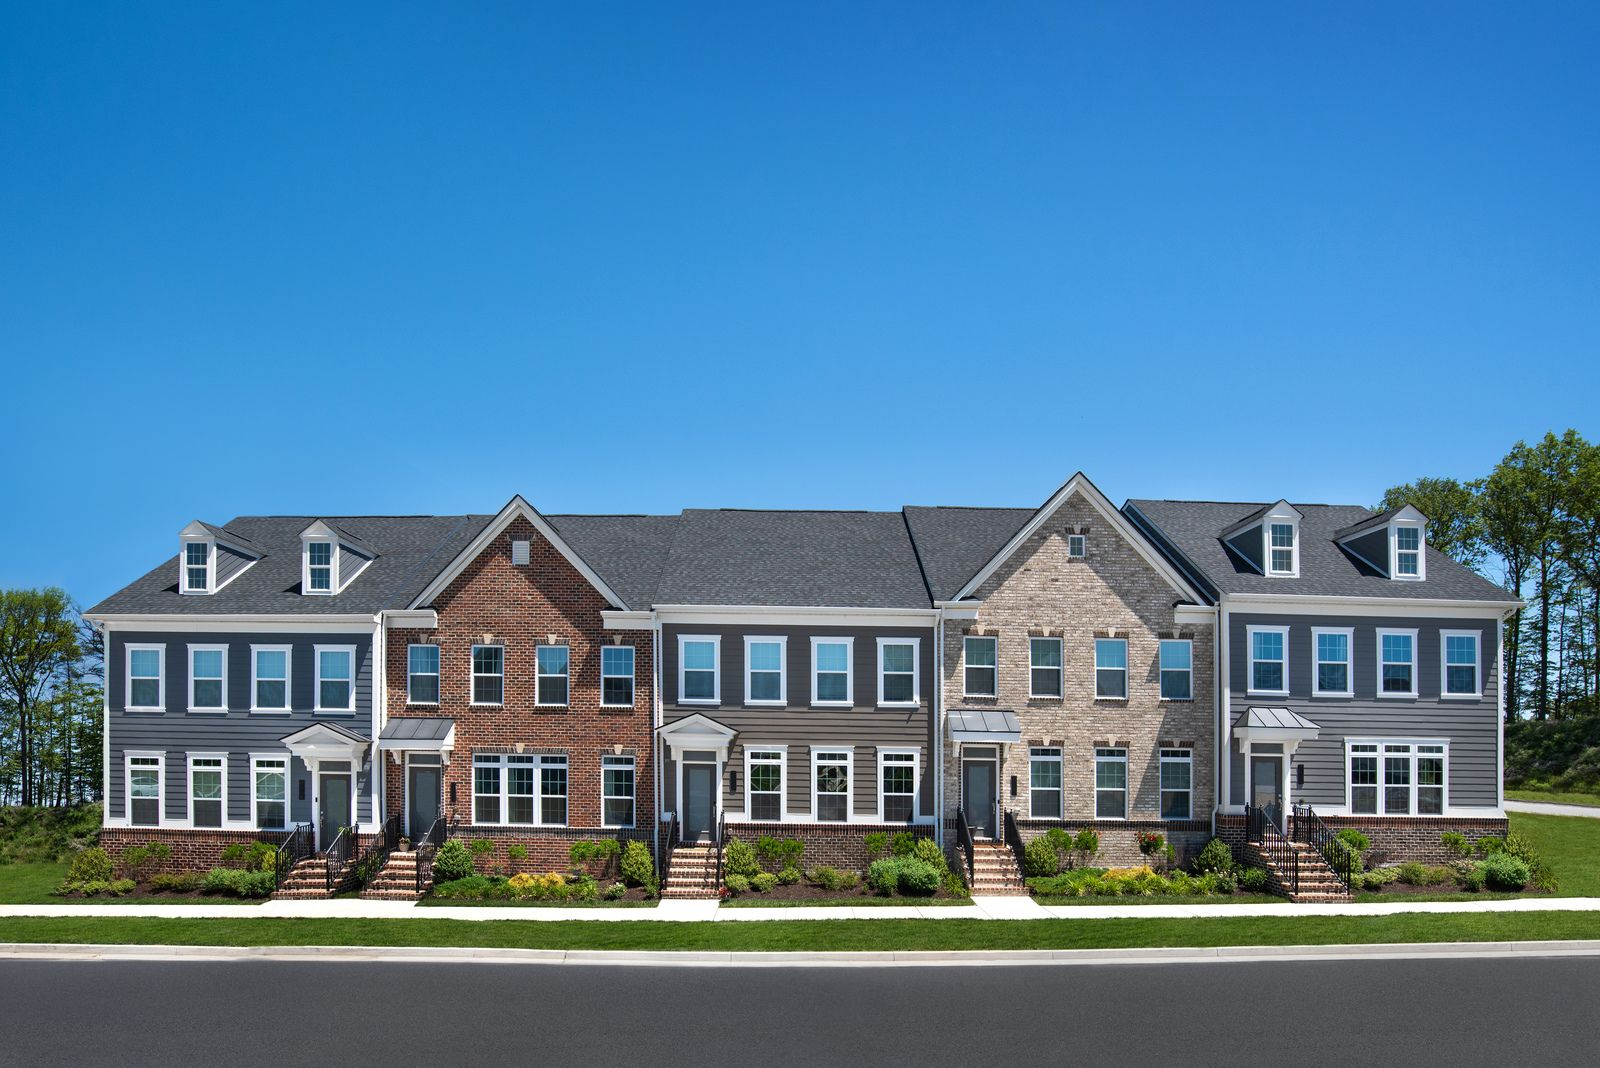 BALTIMORE COUNTY'S MOST LUXURIOUS TOWNHOMES